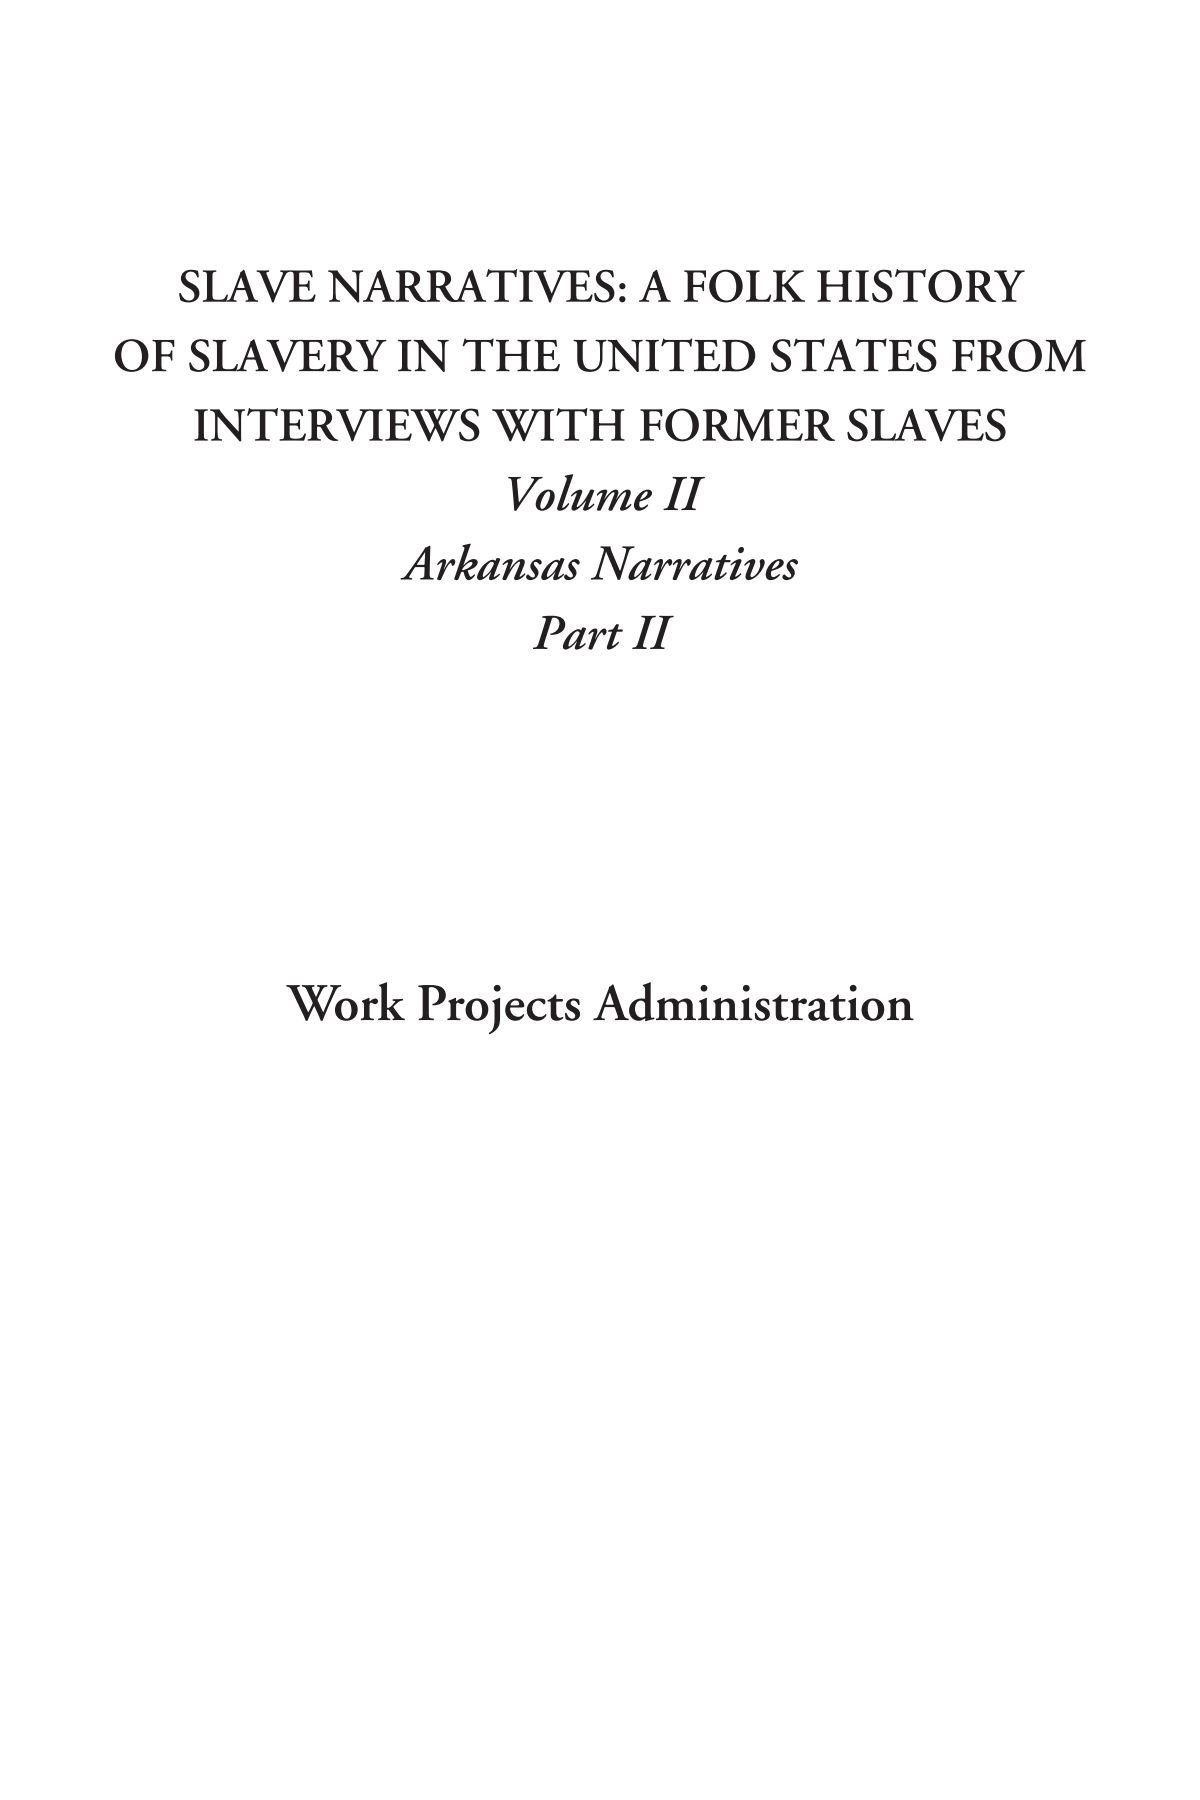 Download Slave Narratives: A Folk History of Slavery in the United States From Interviews with Former Slaves (Volume II: Arkansas Narratives, Part II) pdf